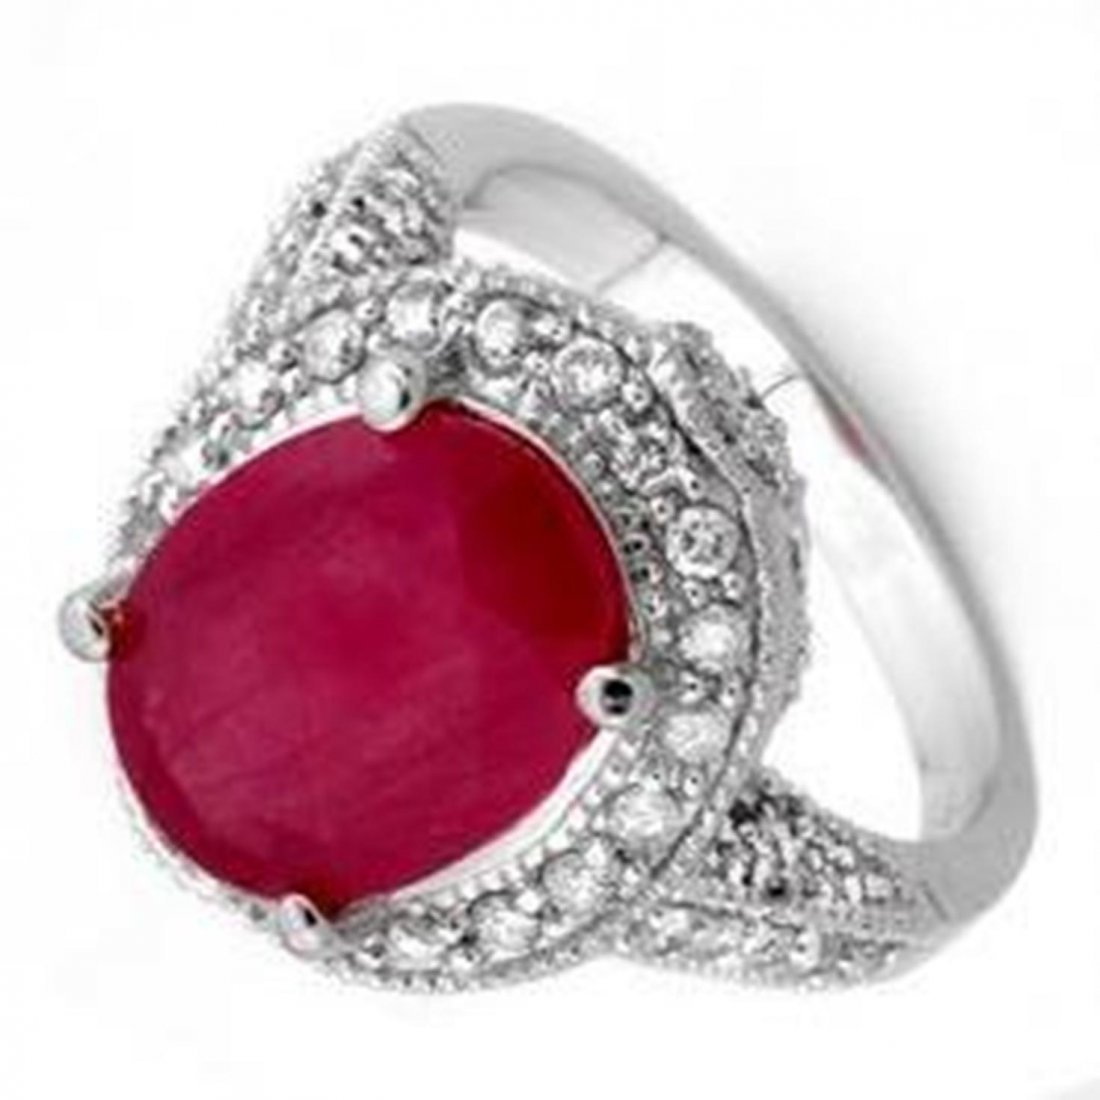 10W: 6.0 ctw Ruby & Diamond Ring 14K White Gold